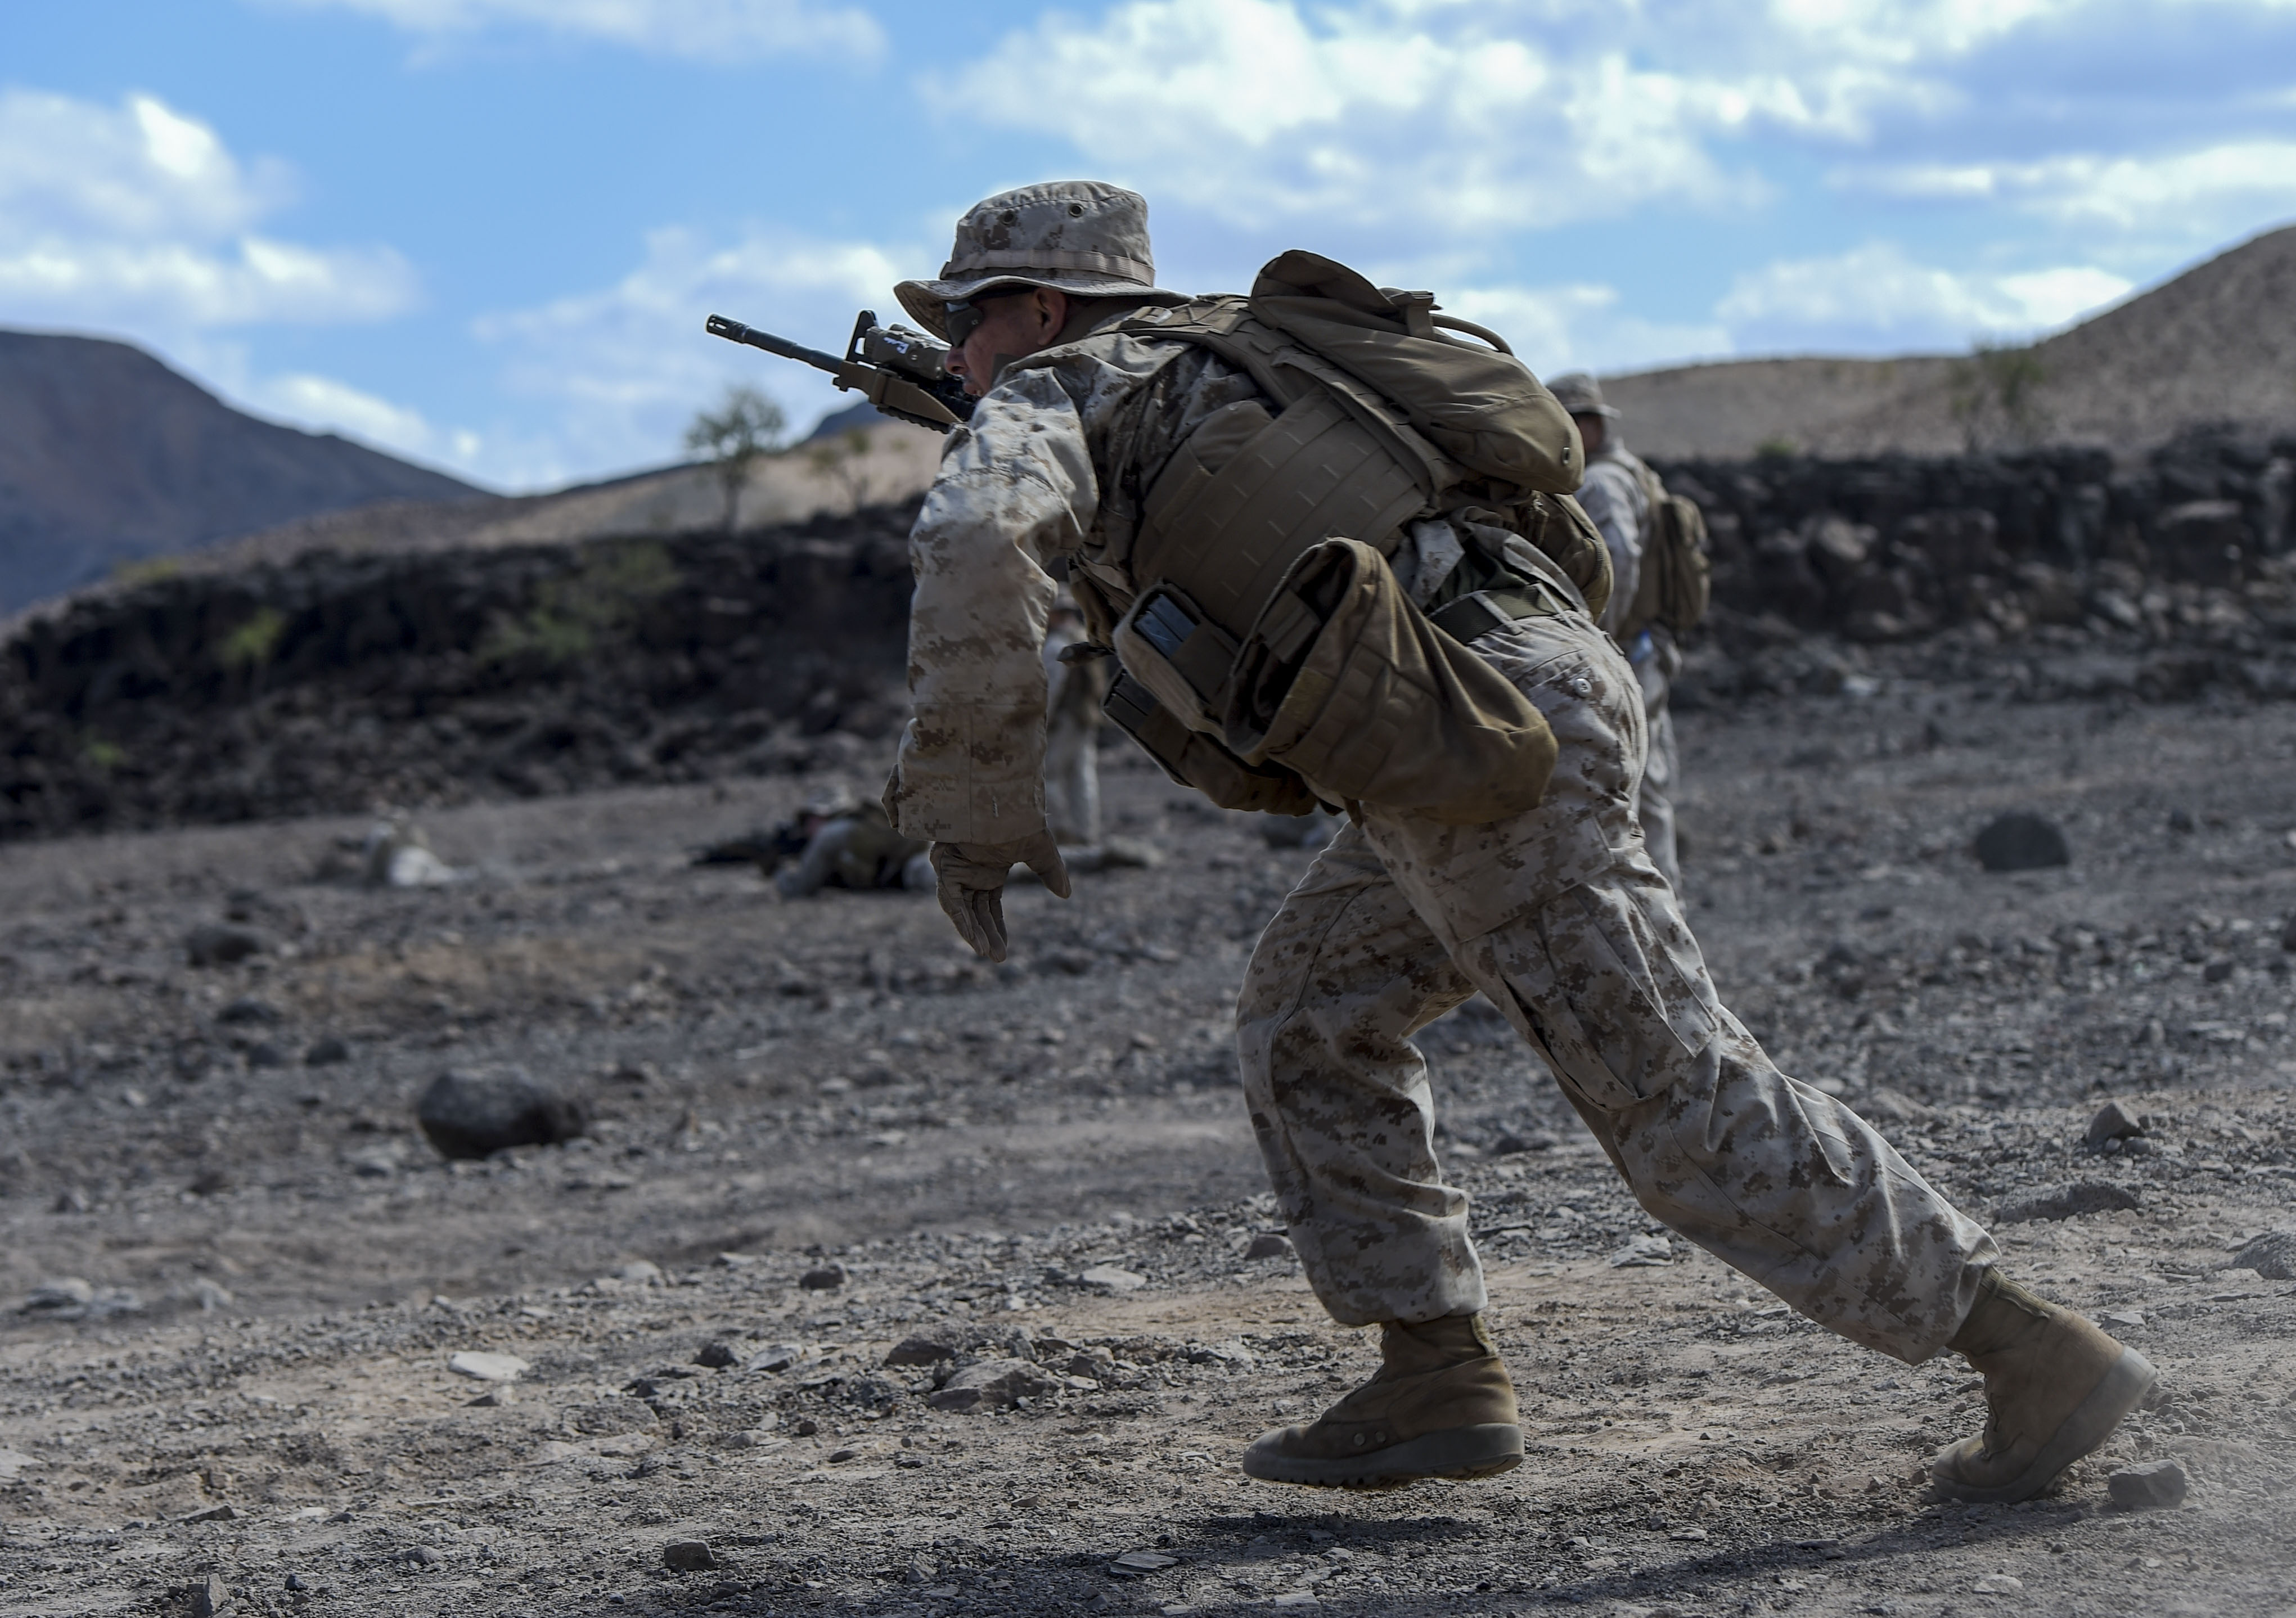 A U.S. Marine with the 15th Marine Expeditionary Unit runs into position during a fire team movement rehearsal during Alligator Dagger at Arta Range, Djibouti, Dec. 15, 2017. Alligator Dagger, led by Naval Amphibious Force, Task Force 51/5th Marine Expeditionary Brigade, is a dedicated, bilateral combat rehearsal that combines U.S. and French forces to practice, rehearse and exercise integrated capabilities available to U.S. Central Command both afloat and ashore. (U.S. Air Force photo by Staff Sgt. Timothy Moore)